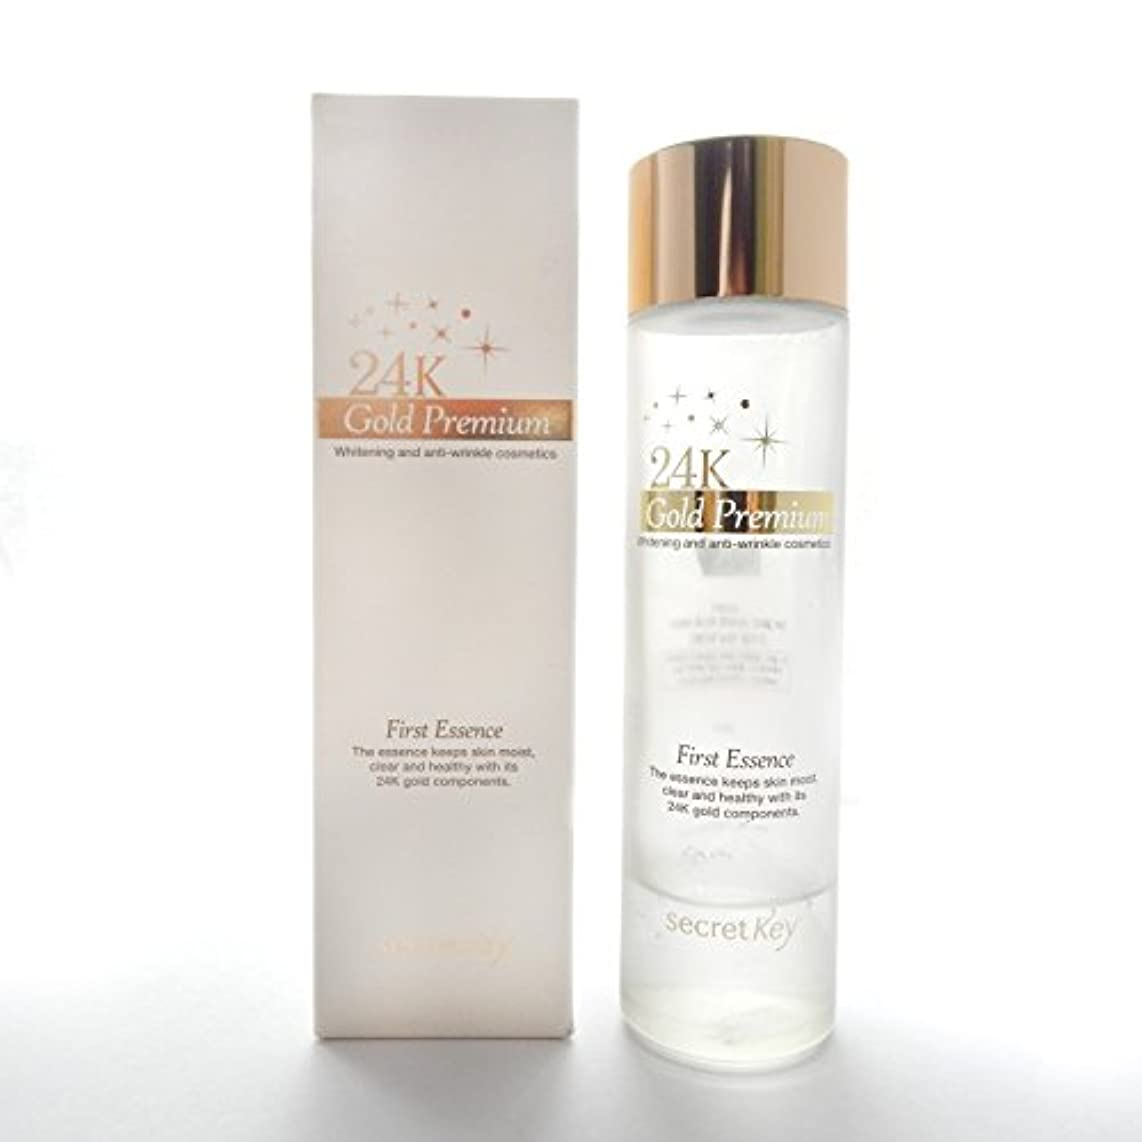 免除楽しいブルーベルSecret key 24K Gold Premium First Essence/100% Authentic Korea Cosmetic